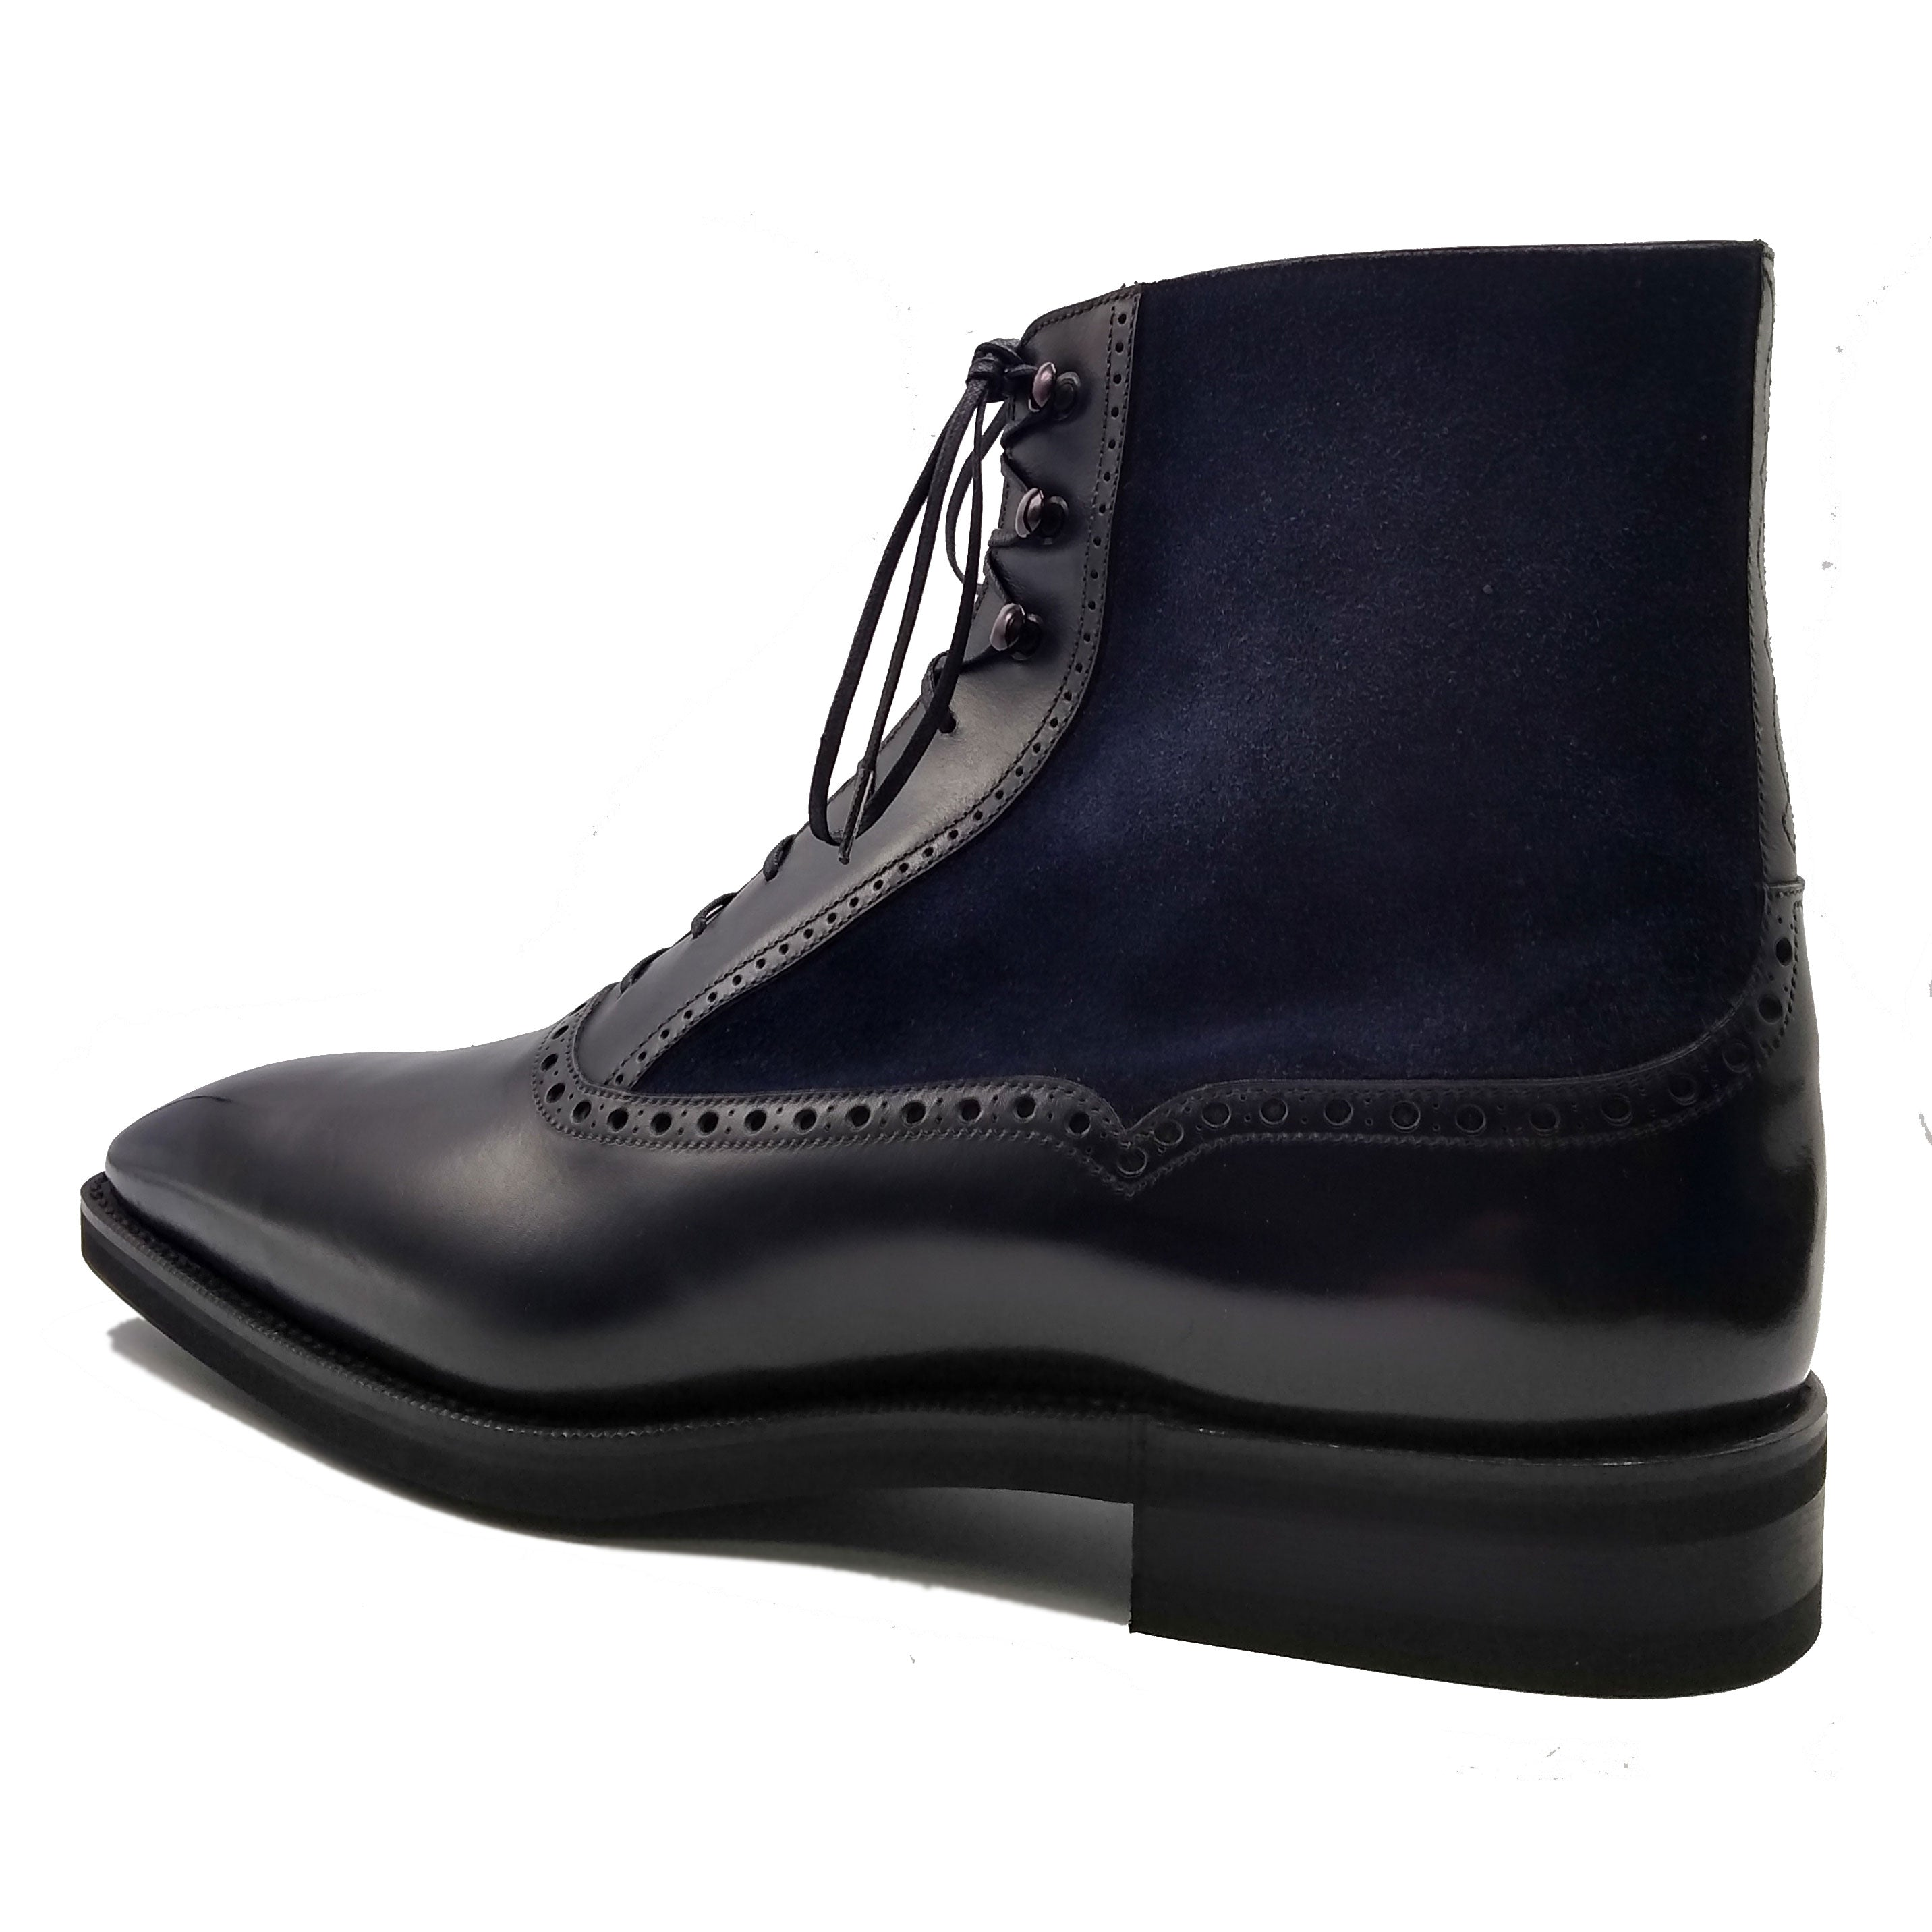 Balmoral Boot (Made-to-Order) - Black and Blue Box Calf & Suede